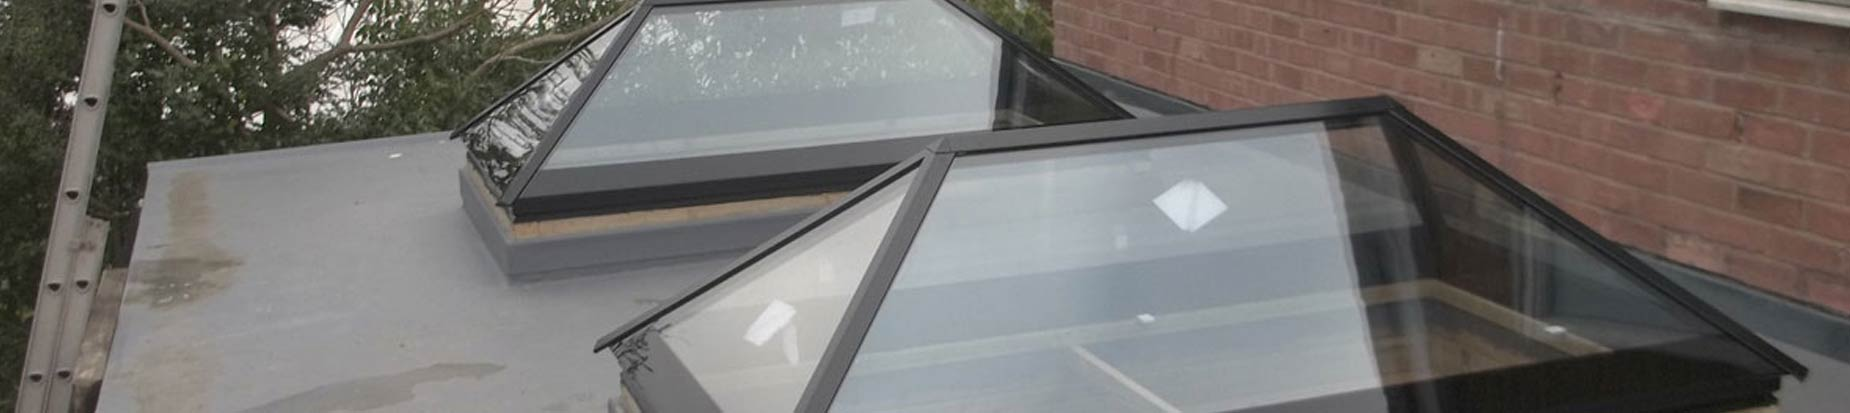 Dual glass roof lanterns installed on a flat fibrglass roof.